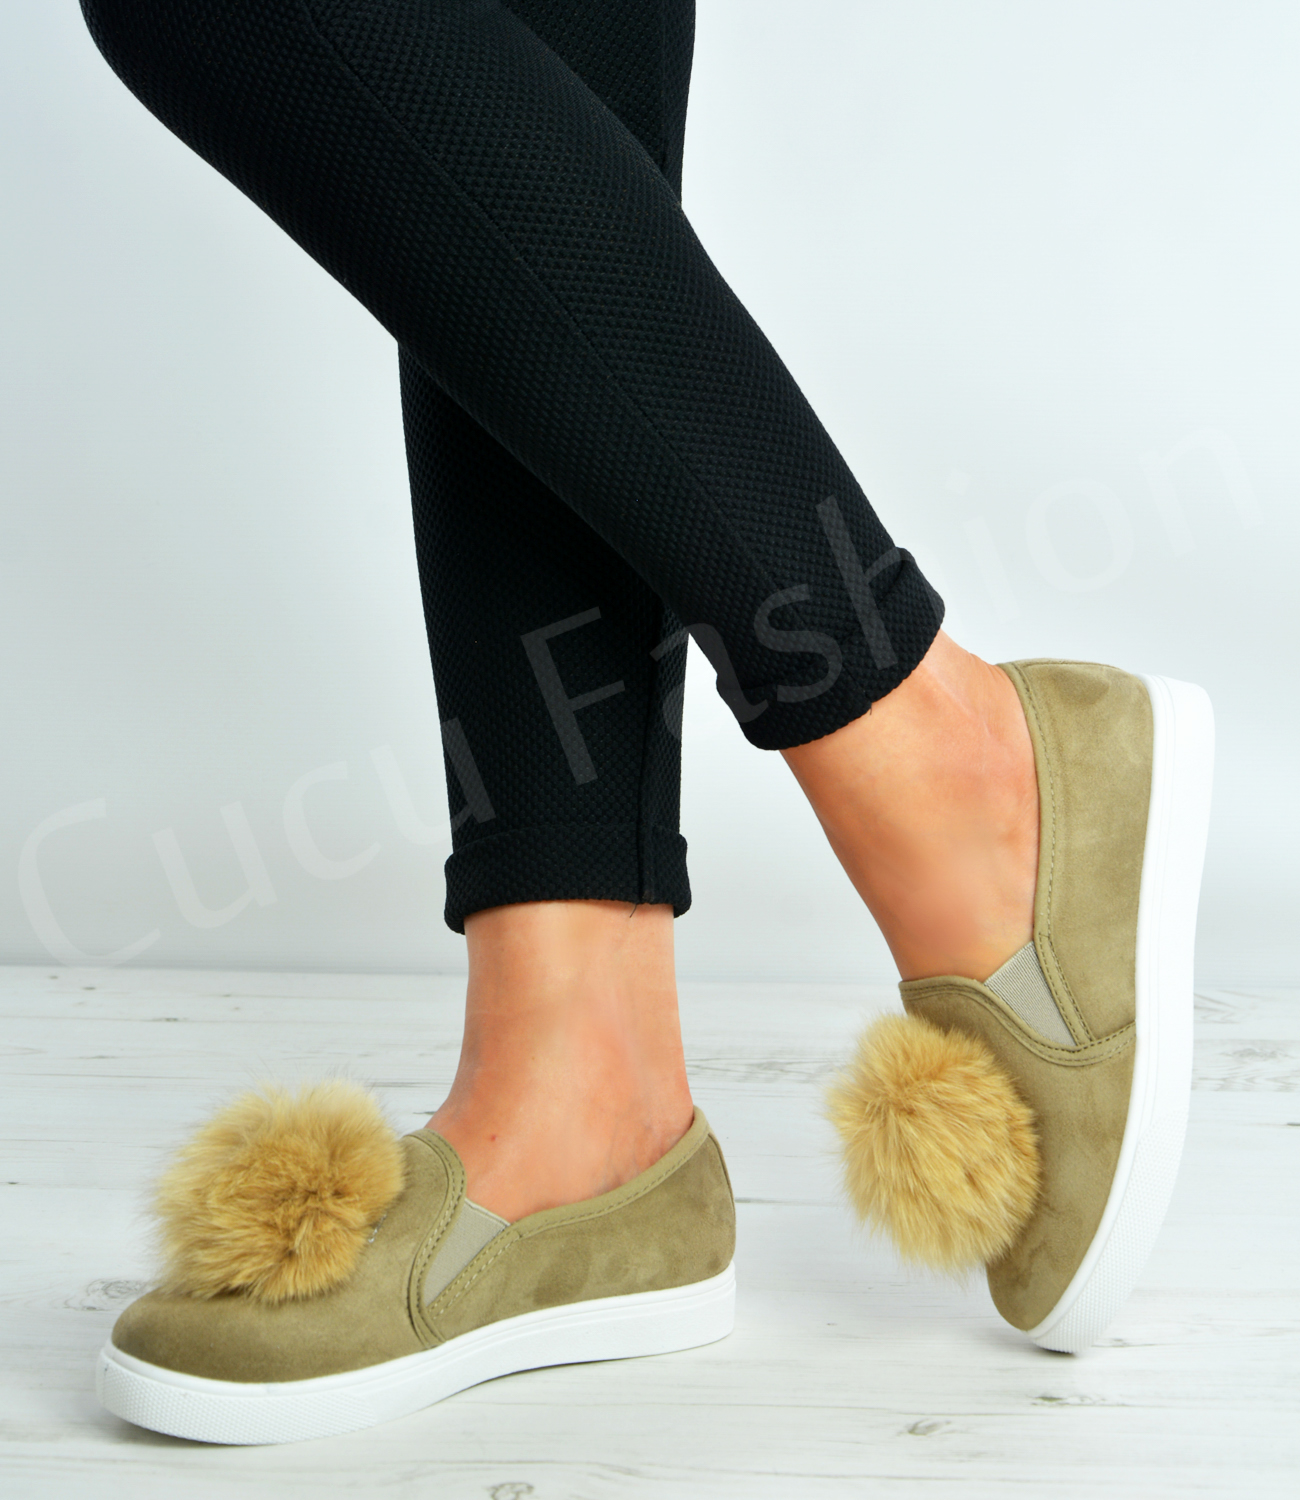 New-Womens-Flat-Trainers-Ladies-Pom-Pom-Slip-On-Sneakers-Shoes-Size-Uk-3-8